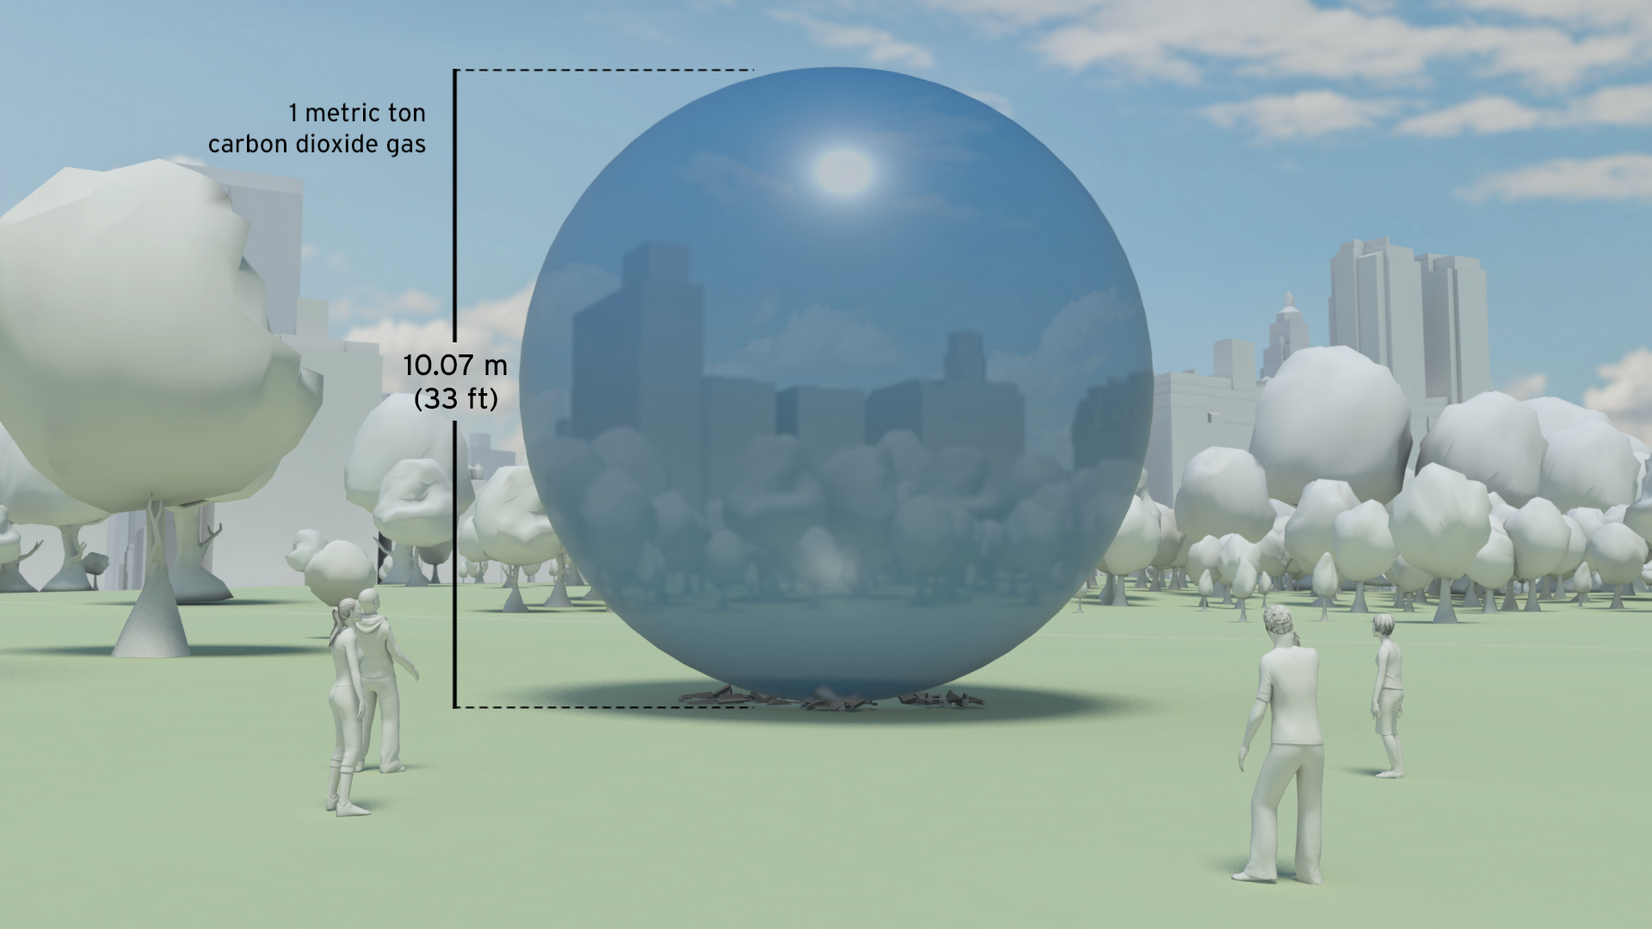 Visual representation of one metric ton of carbon dioxide gas with humans and city for scale